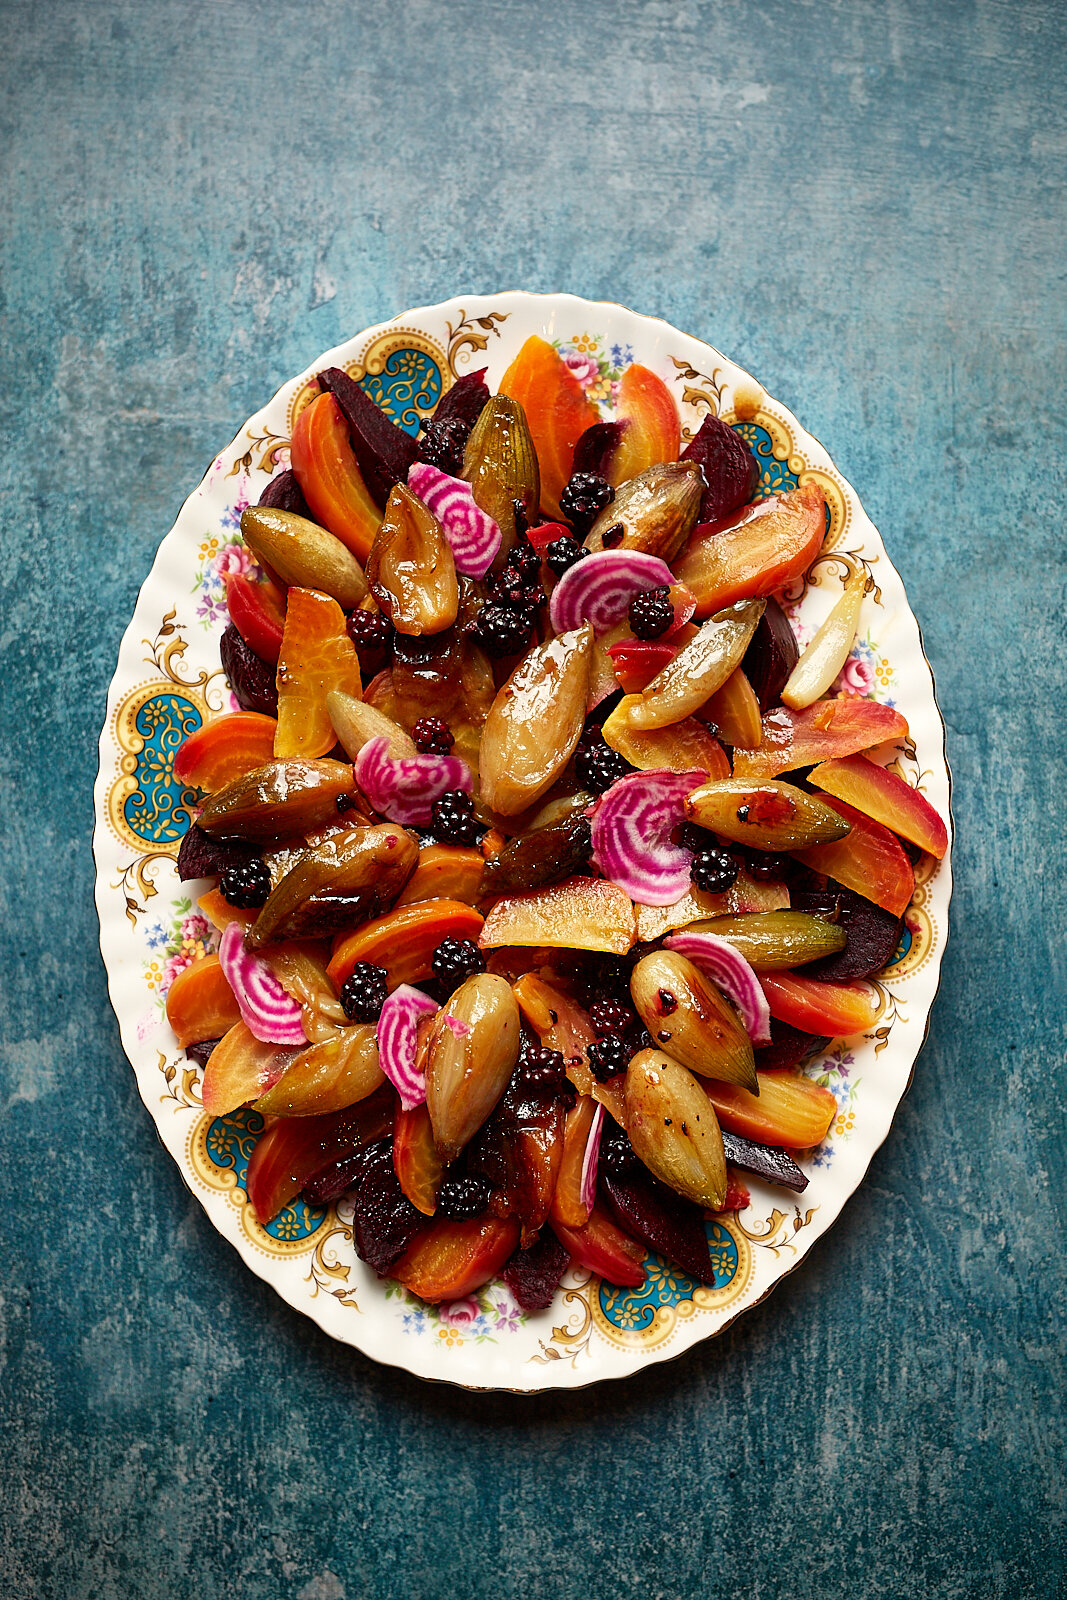 Roasted beetroot and shallots with pickled blackberries